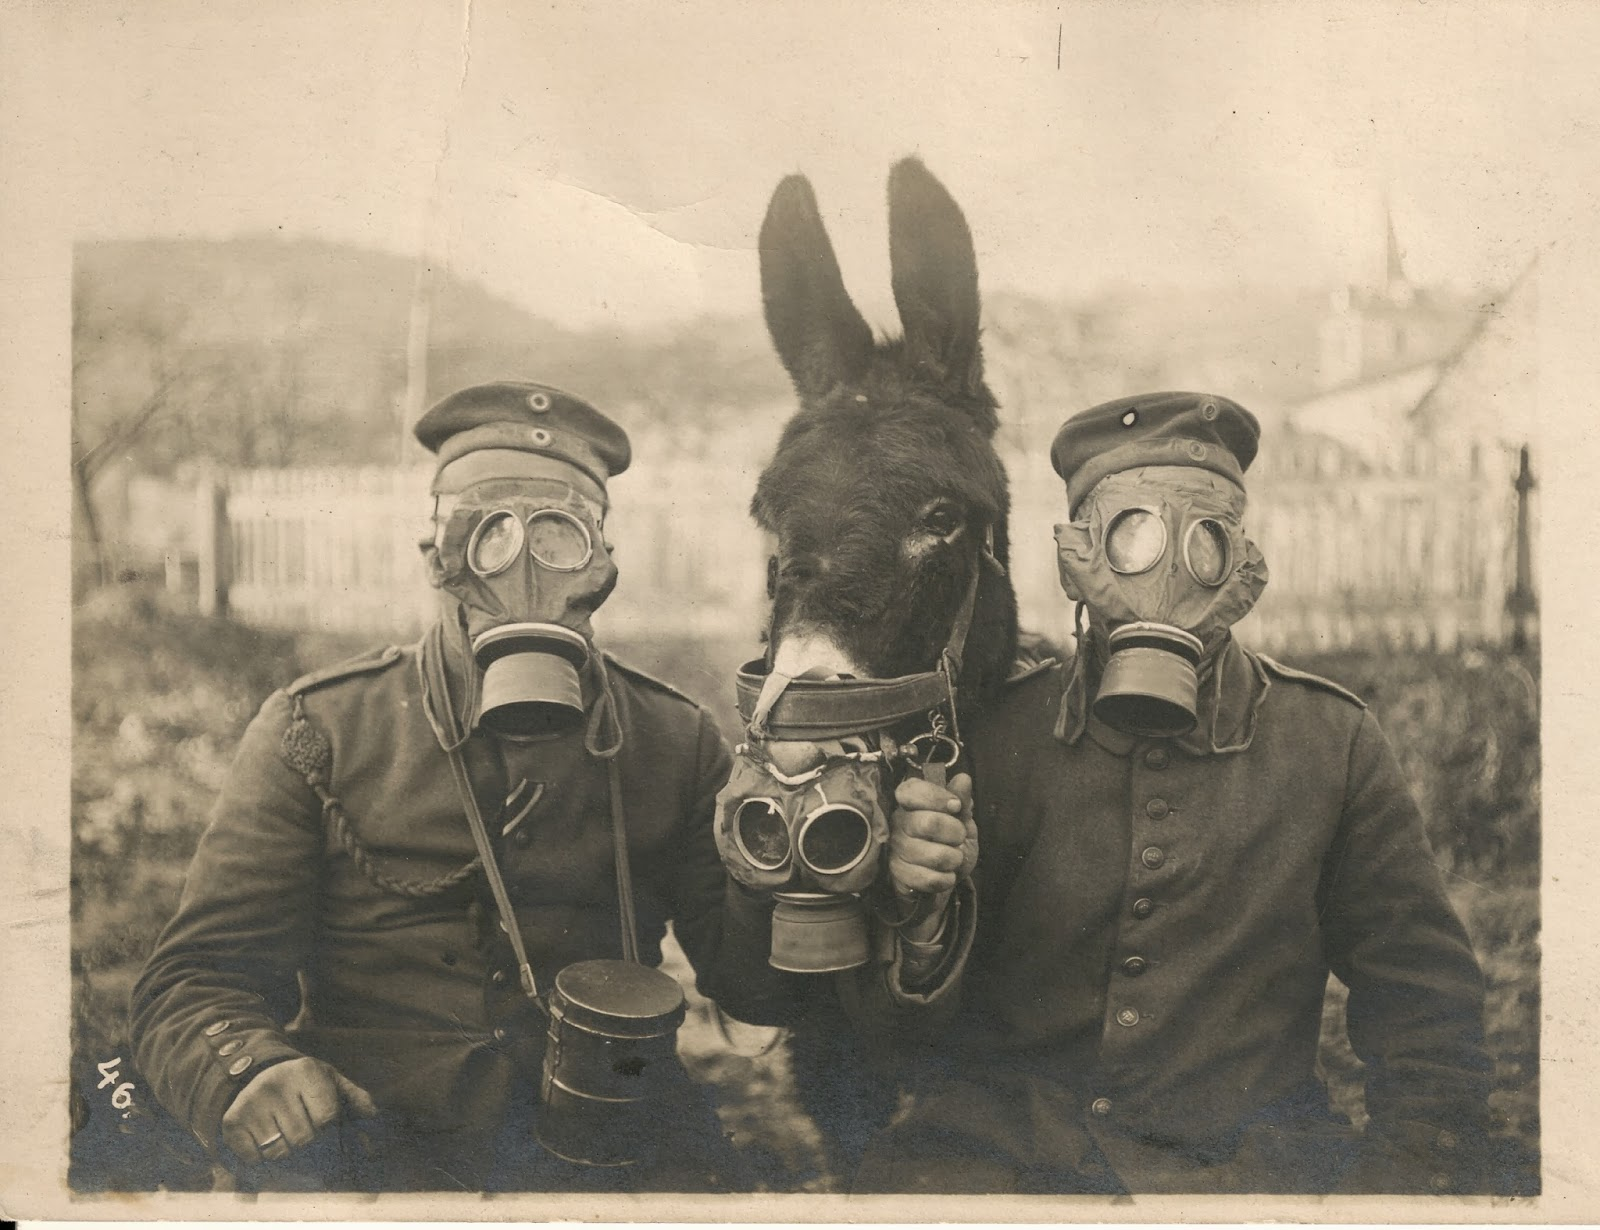 Two German soldiers and their mule wearing gas masks in WWI, 1916 - Imgur